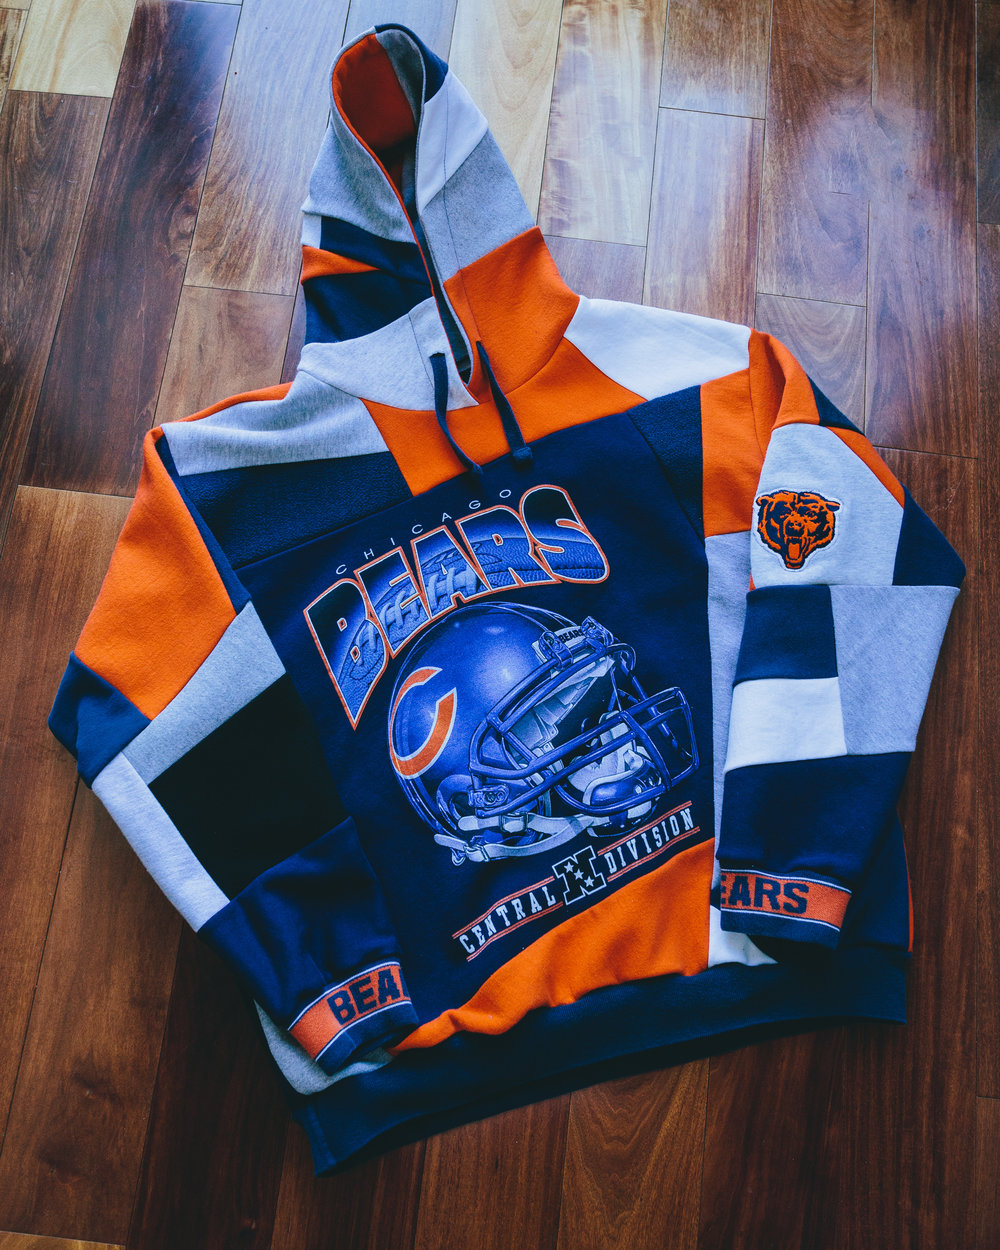 Bears Gameday Sweatshirt - Made from a 90's helmet print graphic and artfully pieced together with spellout cuffs and an embroidered arm logo.